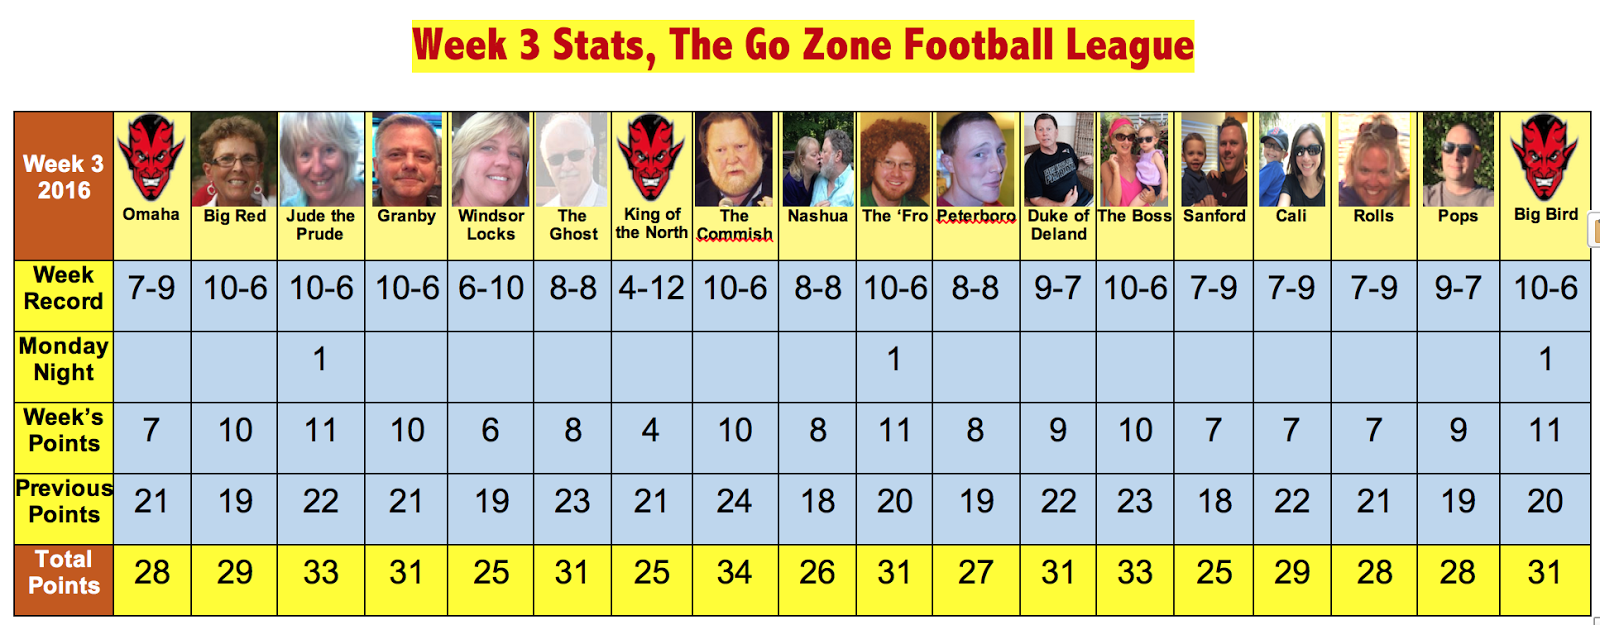 helena week 3 stat Find out the week 3, 2017 stats leaders in every major category throughout all of  nfl pro football.